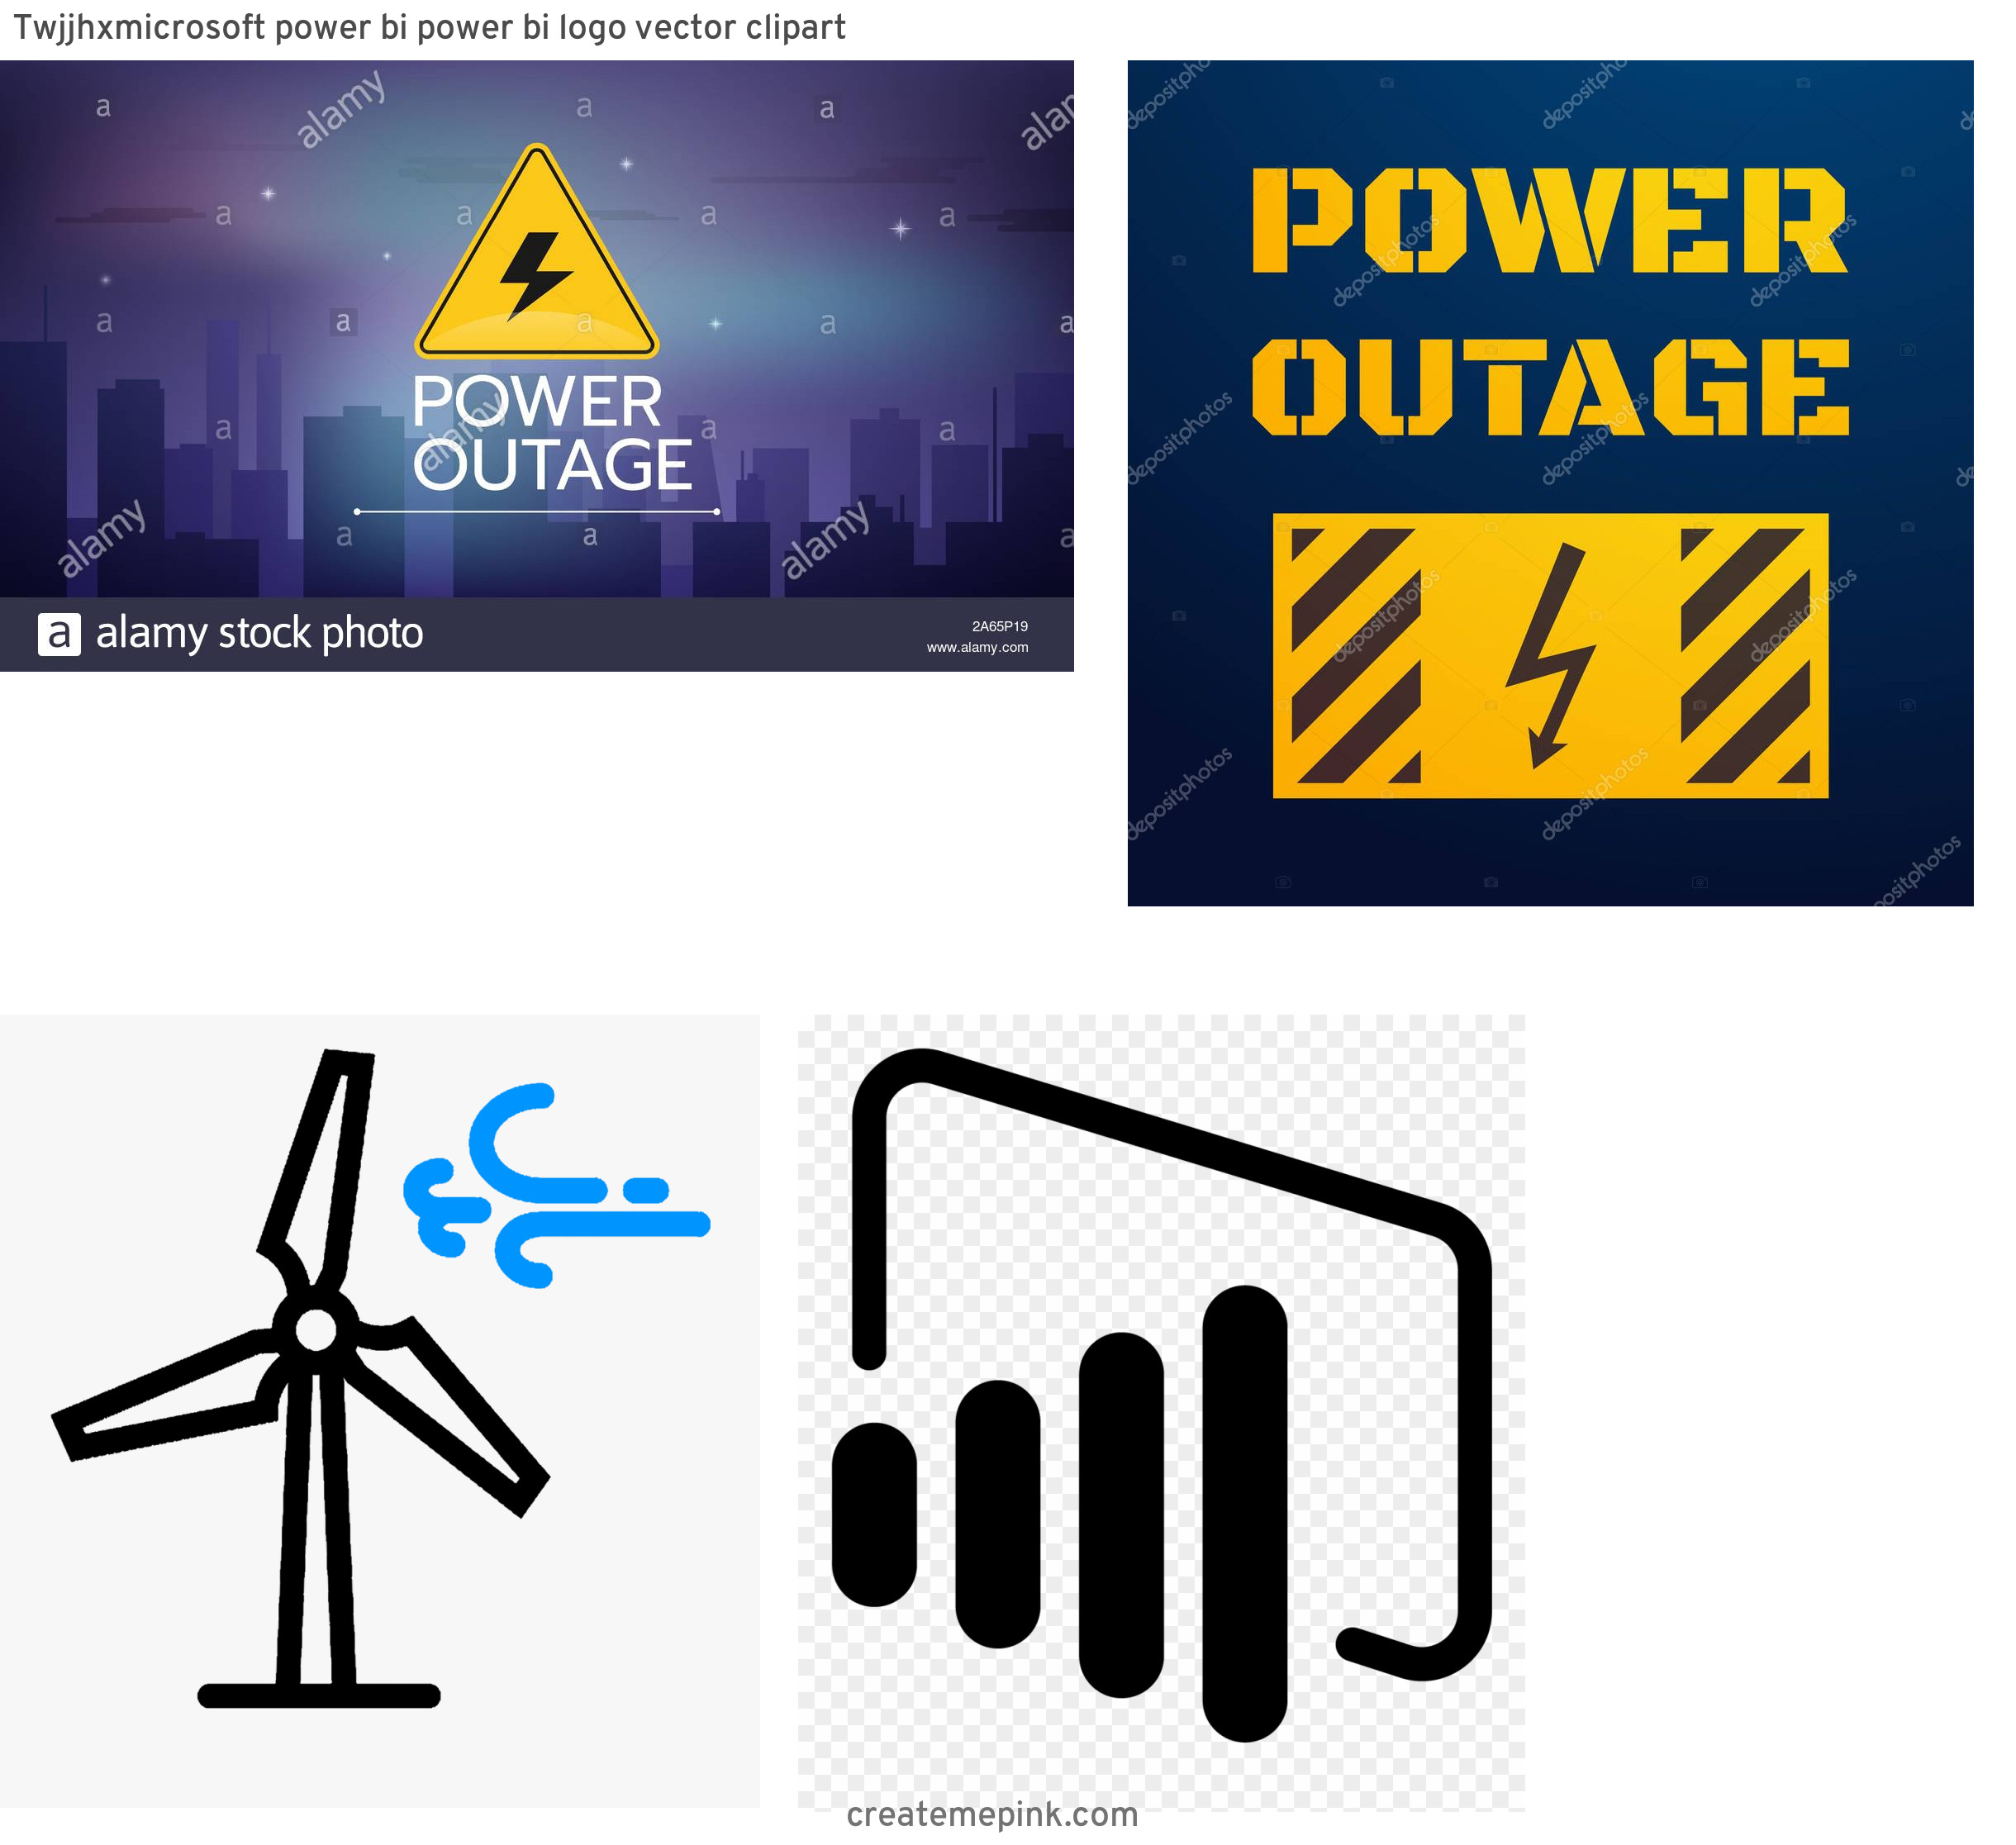 Vector Power Outage: Twjjhxmicrosoft Power Bi Power Bi Logo Vector Clipart